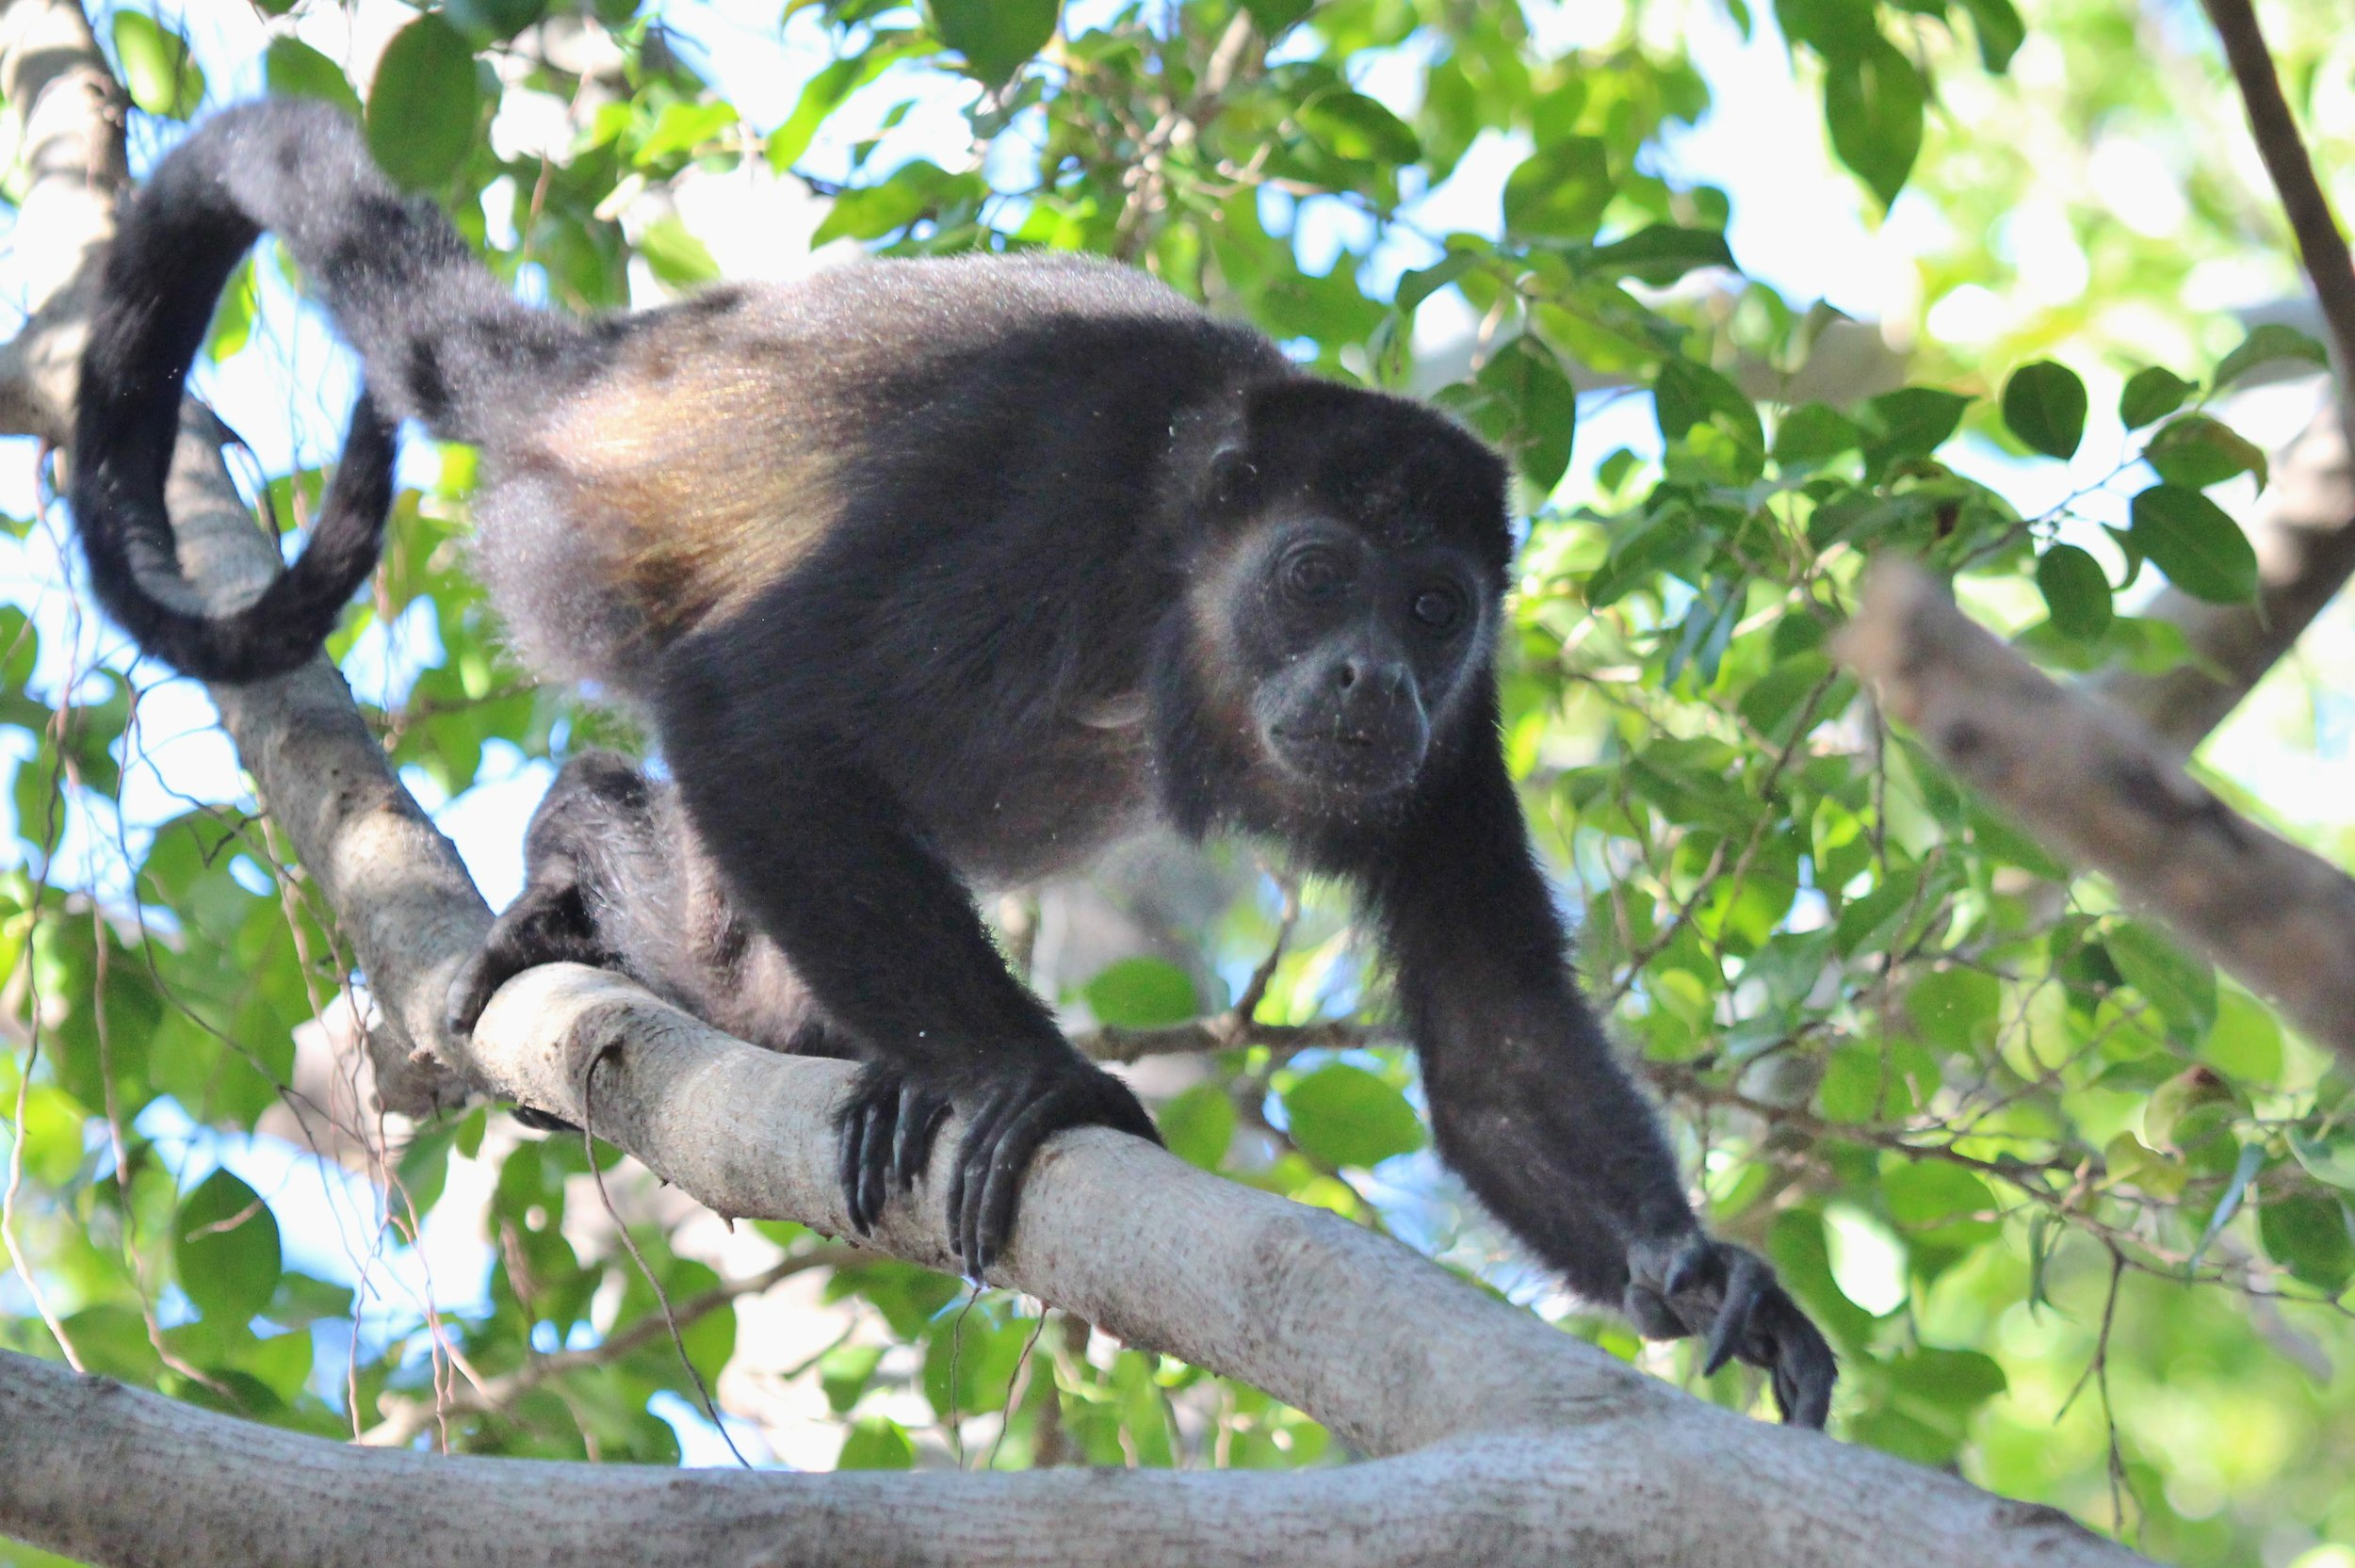 Howler monkeys woke us up each morning with their low pitched howling and hooting. A troop of them frequented a tree near our hotel.